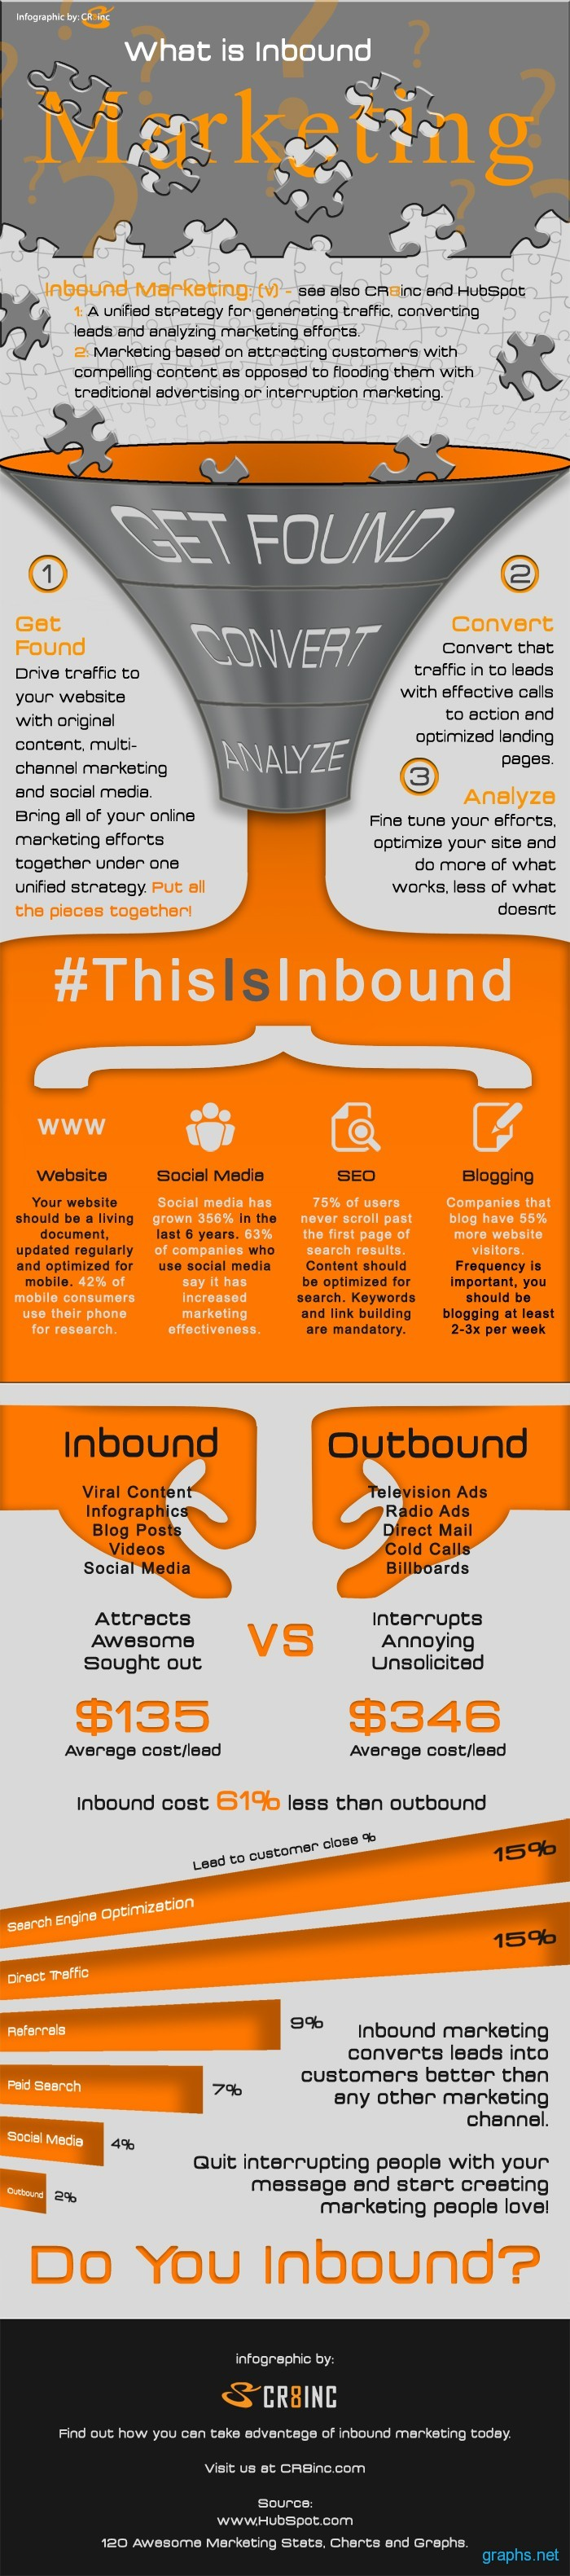 Inbound Marketing Information